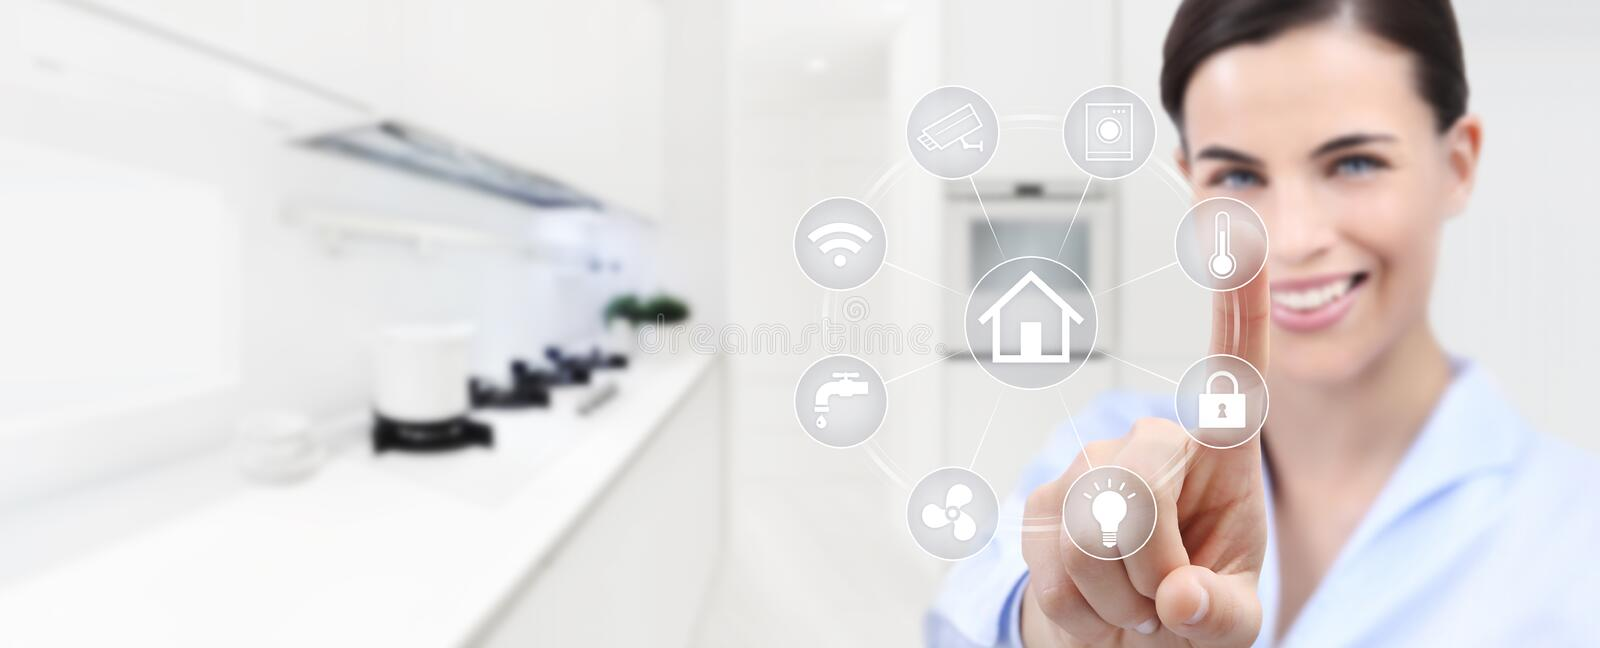 Smart home automation smiling woman hand touch screen with white royalty free stock photo